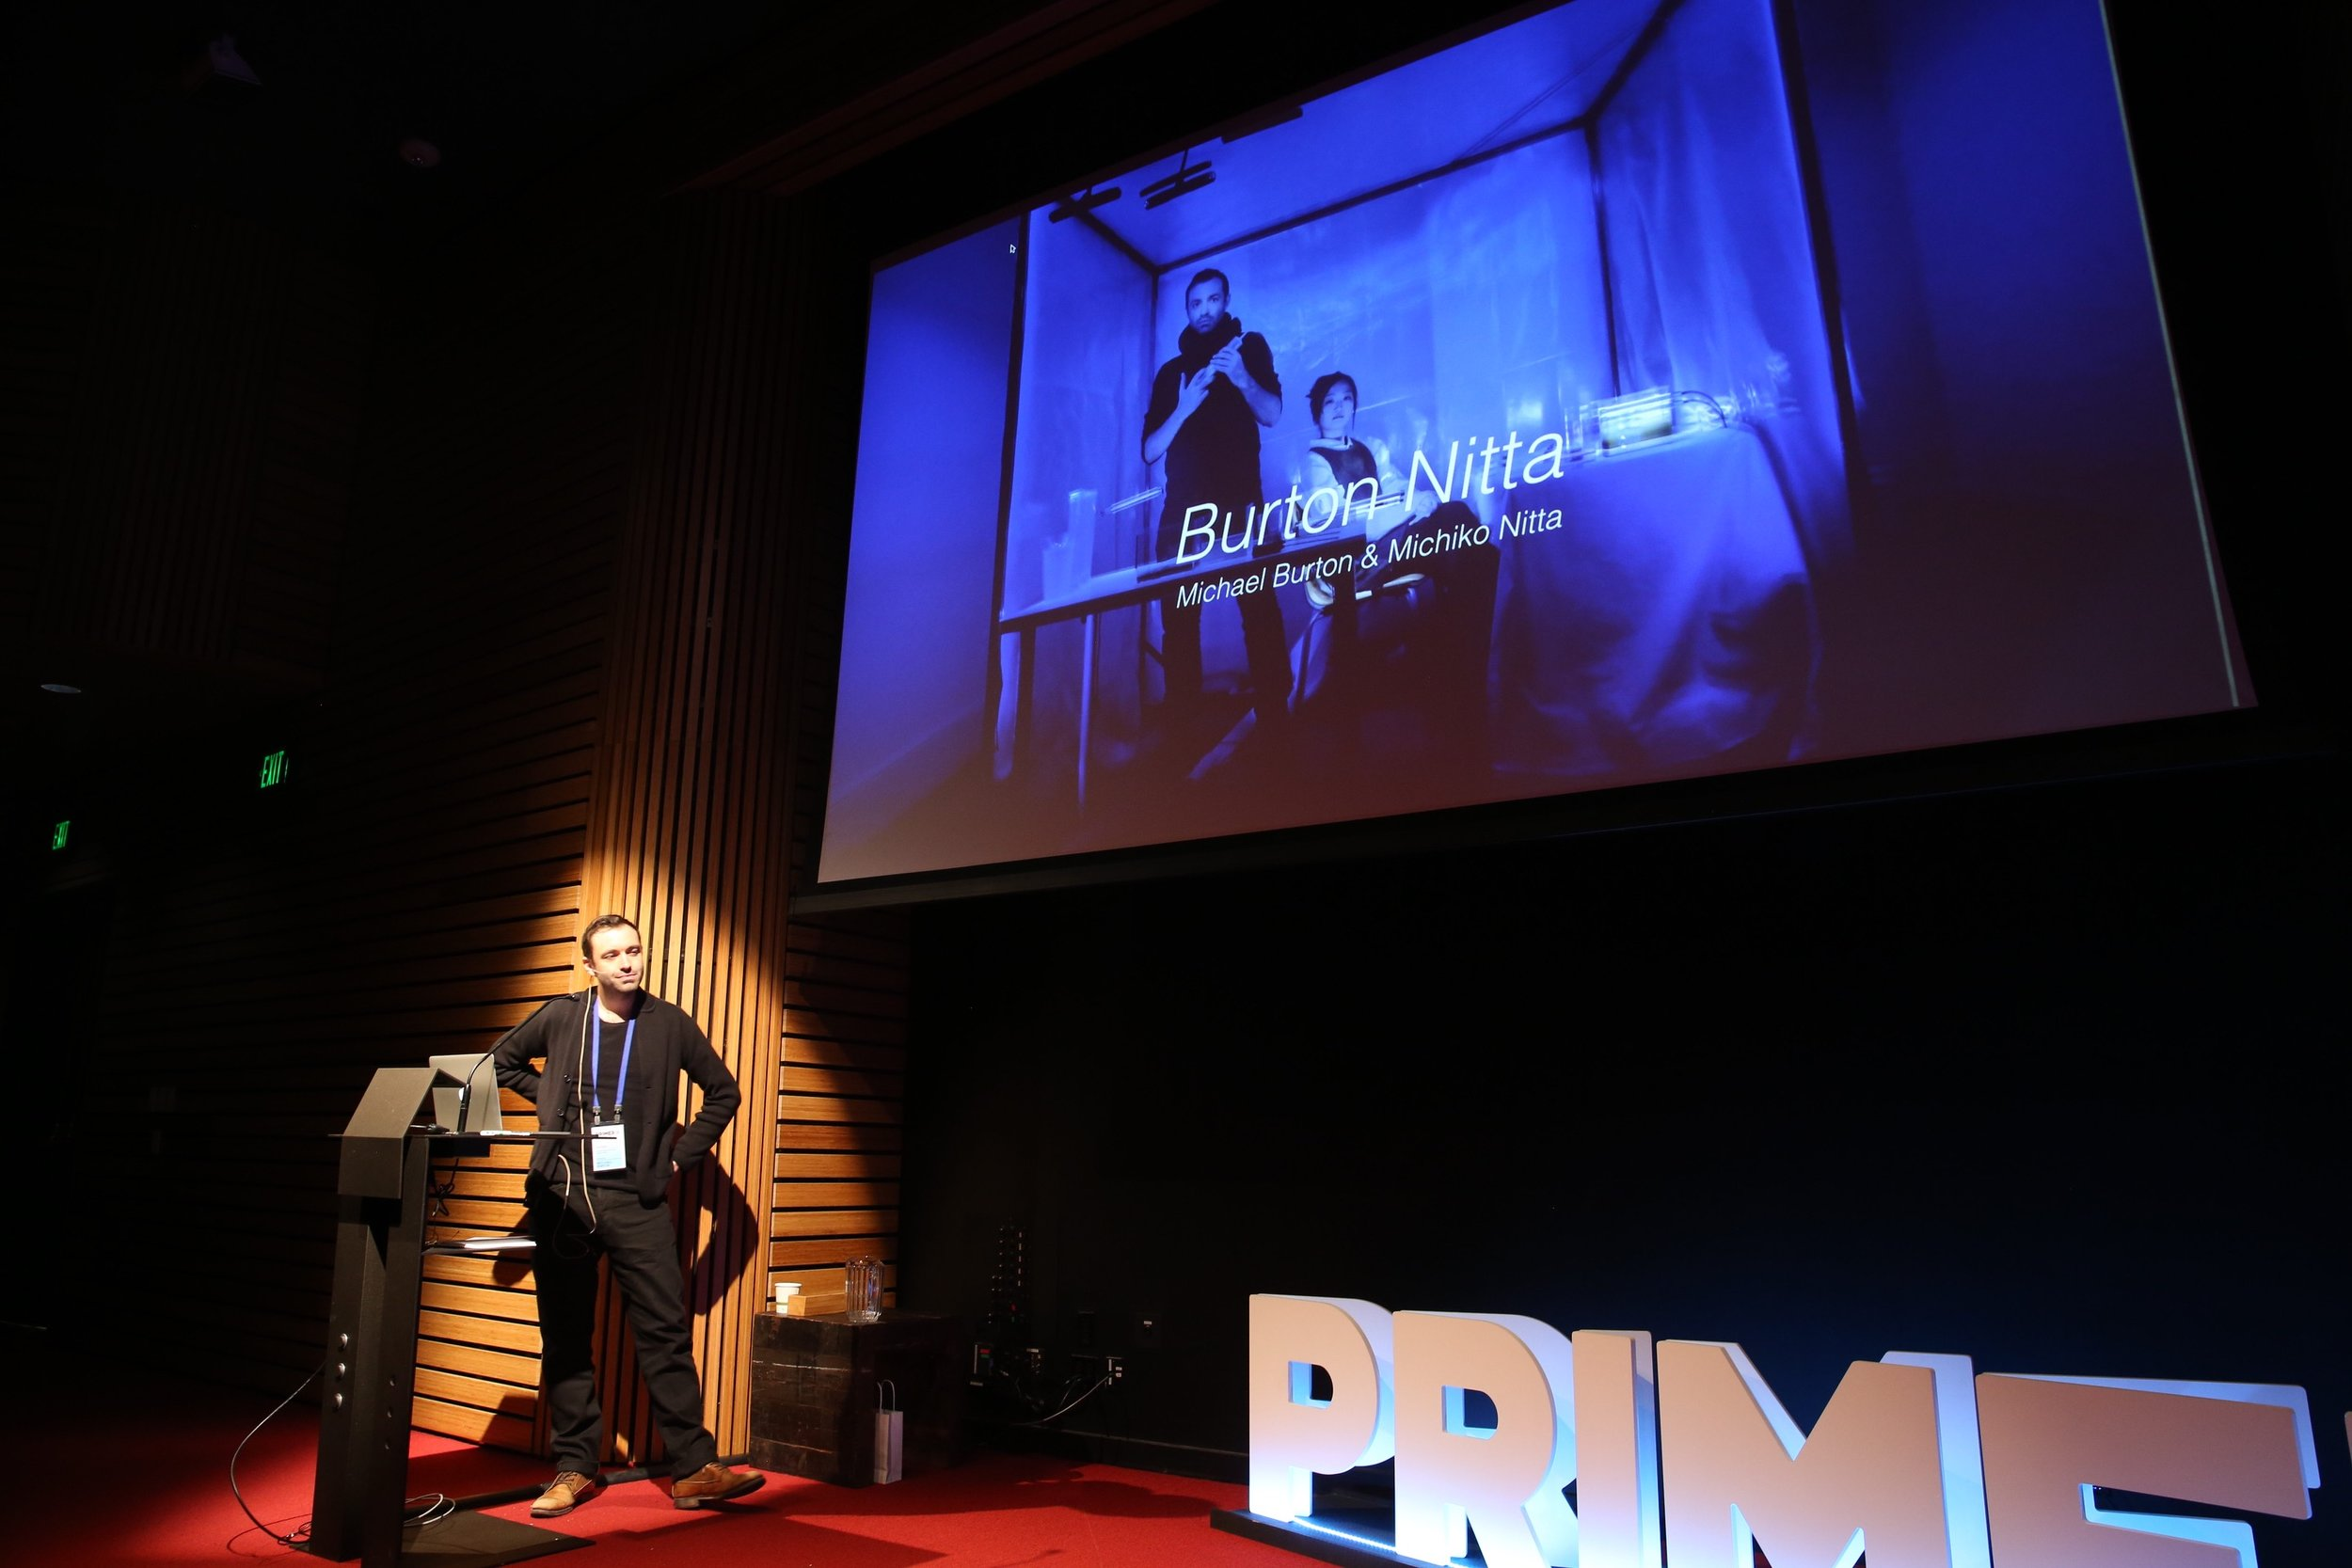 PRIMER - PRIMER is our annual conference in the US and Europe. It was created to prepare you for the future and to equip you to help shape it. We bring together the leading minds in futures design thinking and doing and exhibit work from all around the world. Learn more